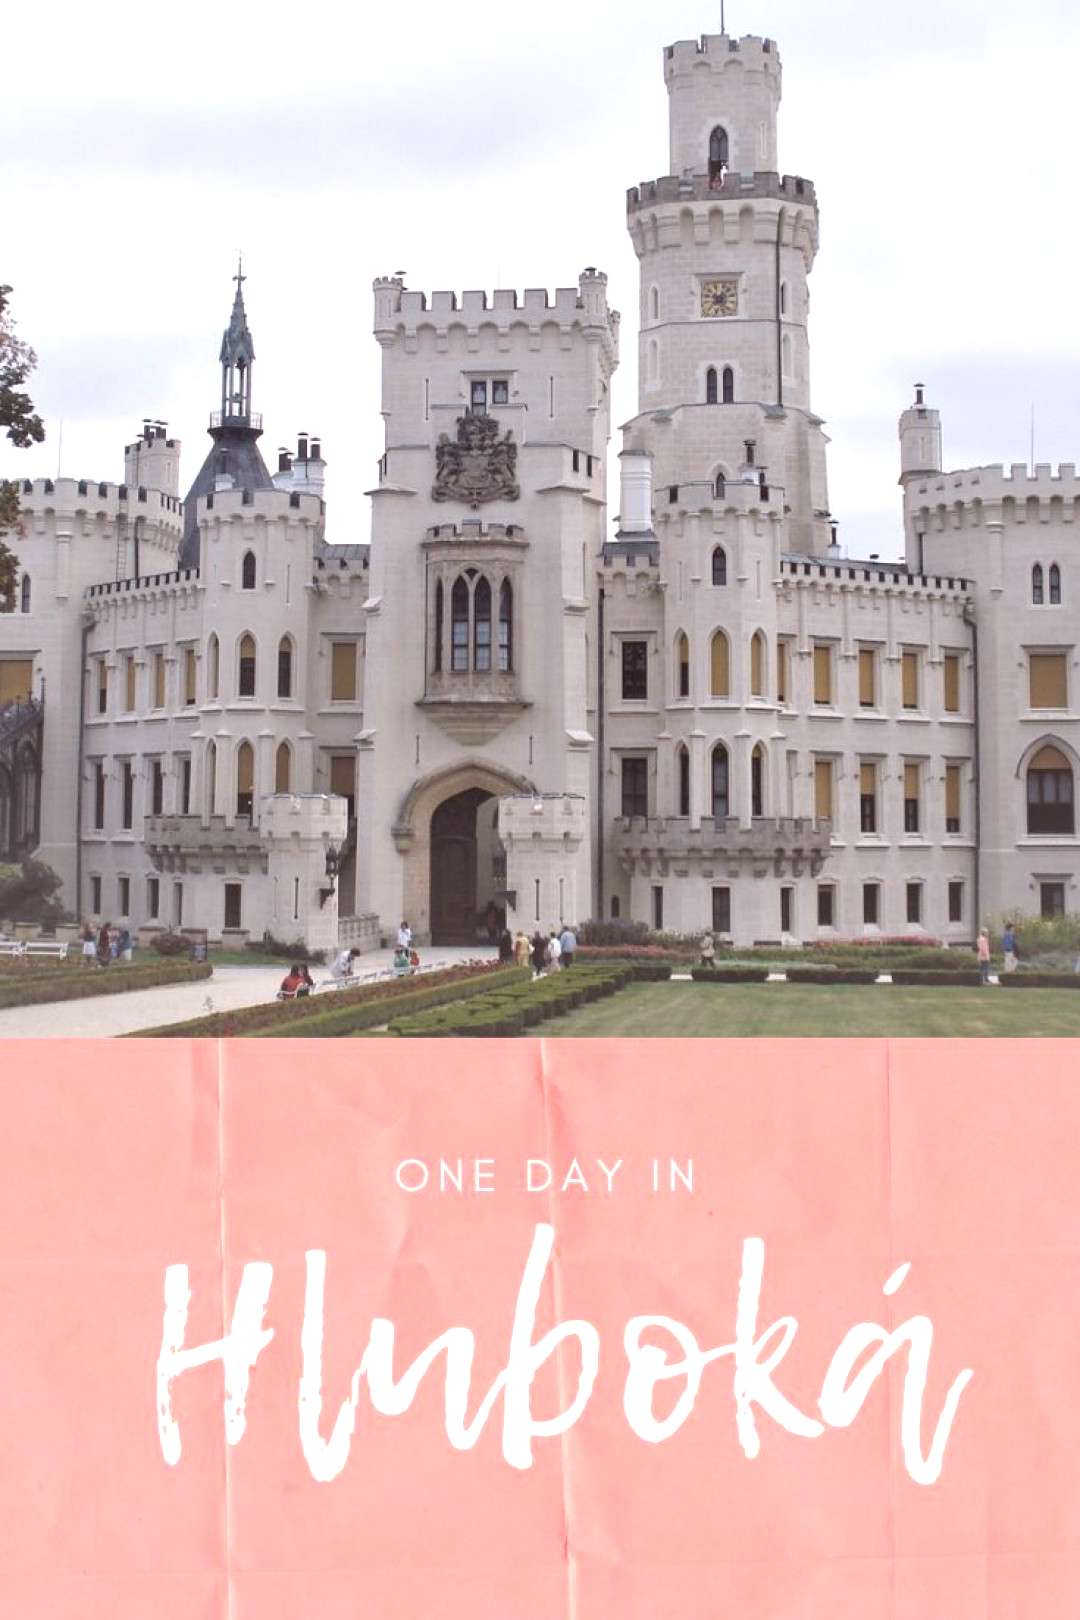 One day in Hluboká Hluboká Castle is like a fairytale. One of the most visited and famous castles